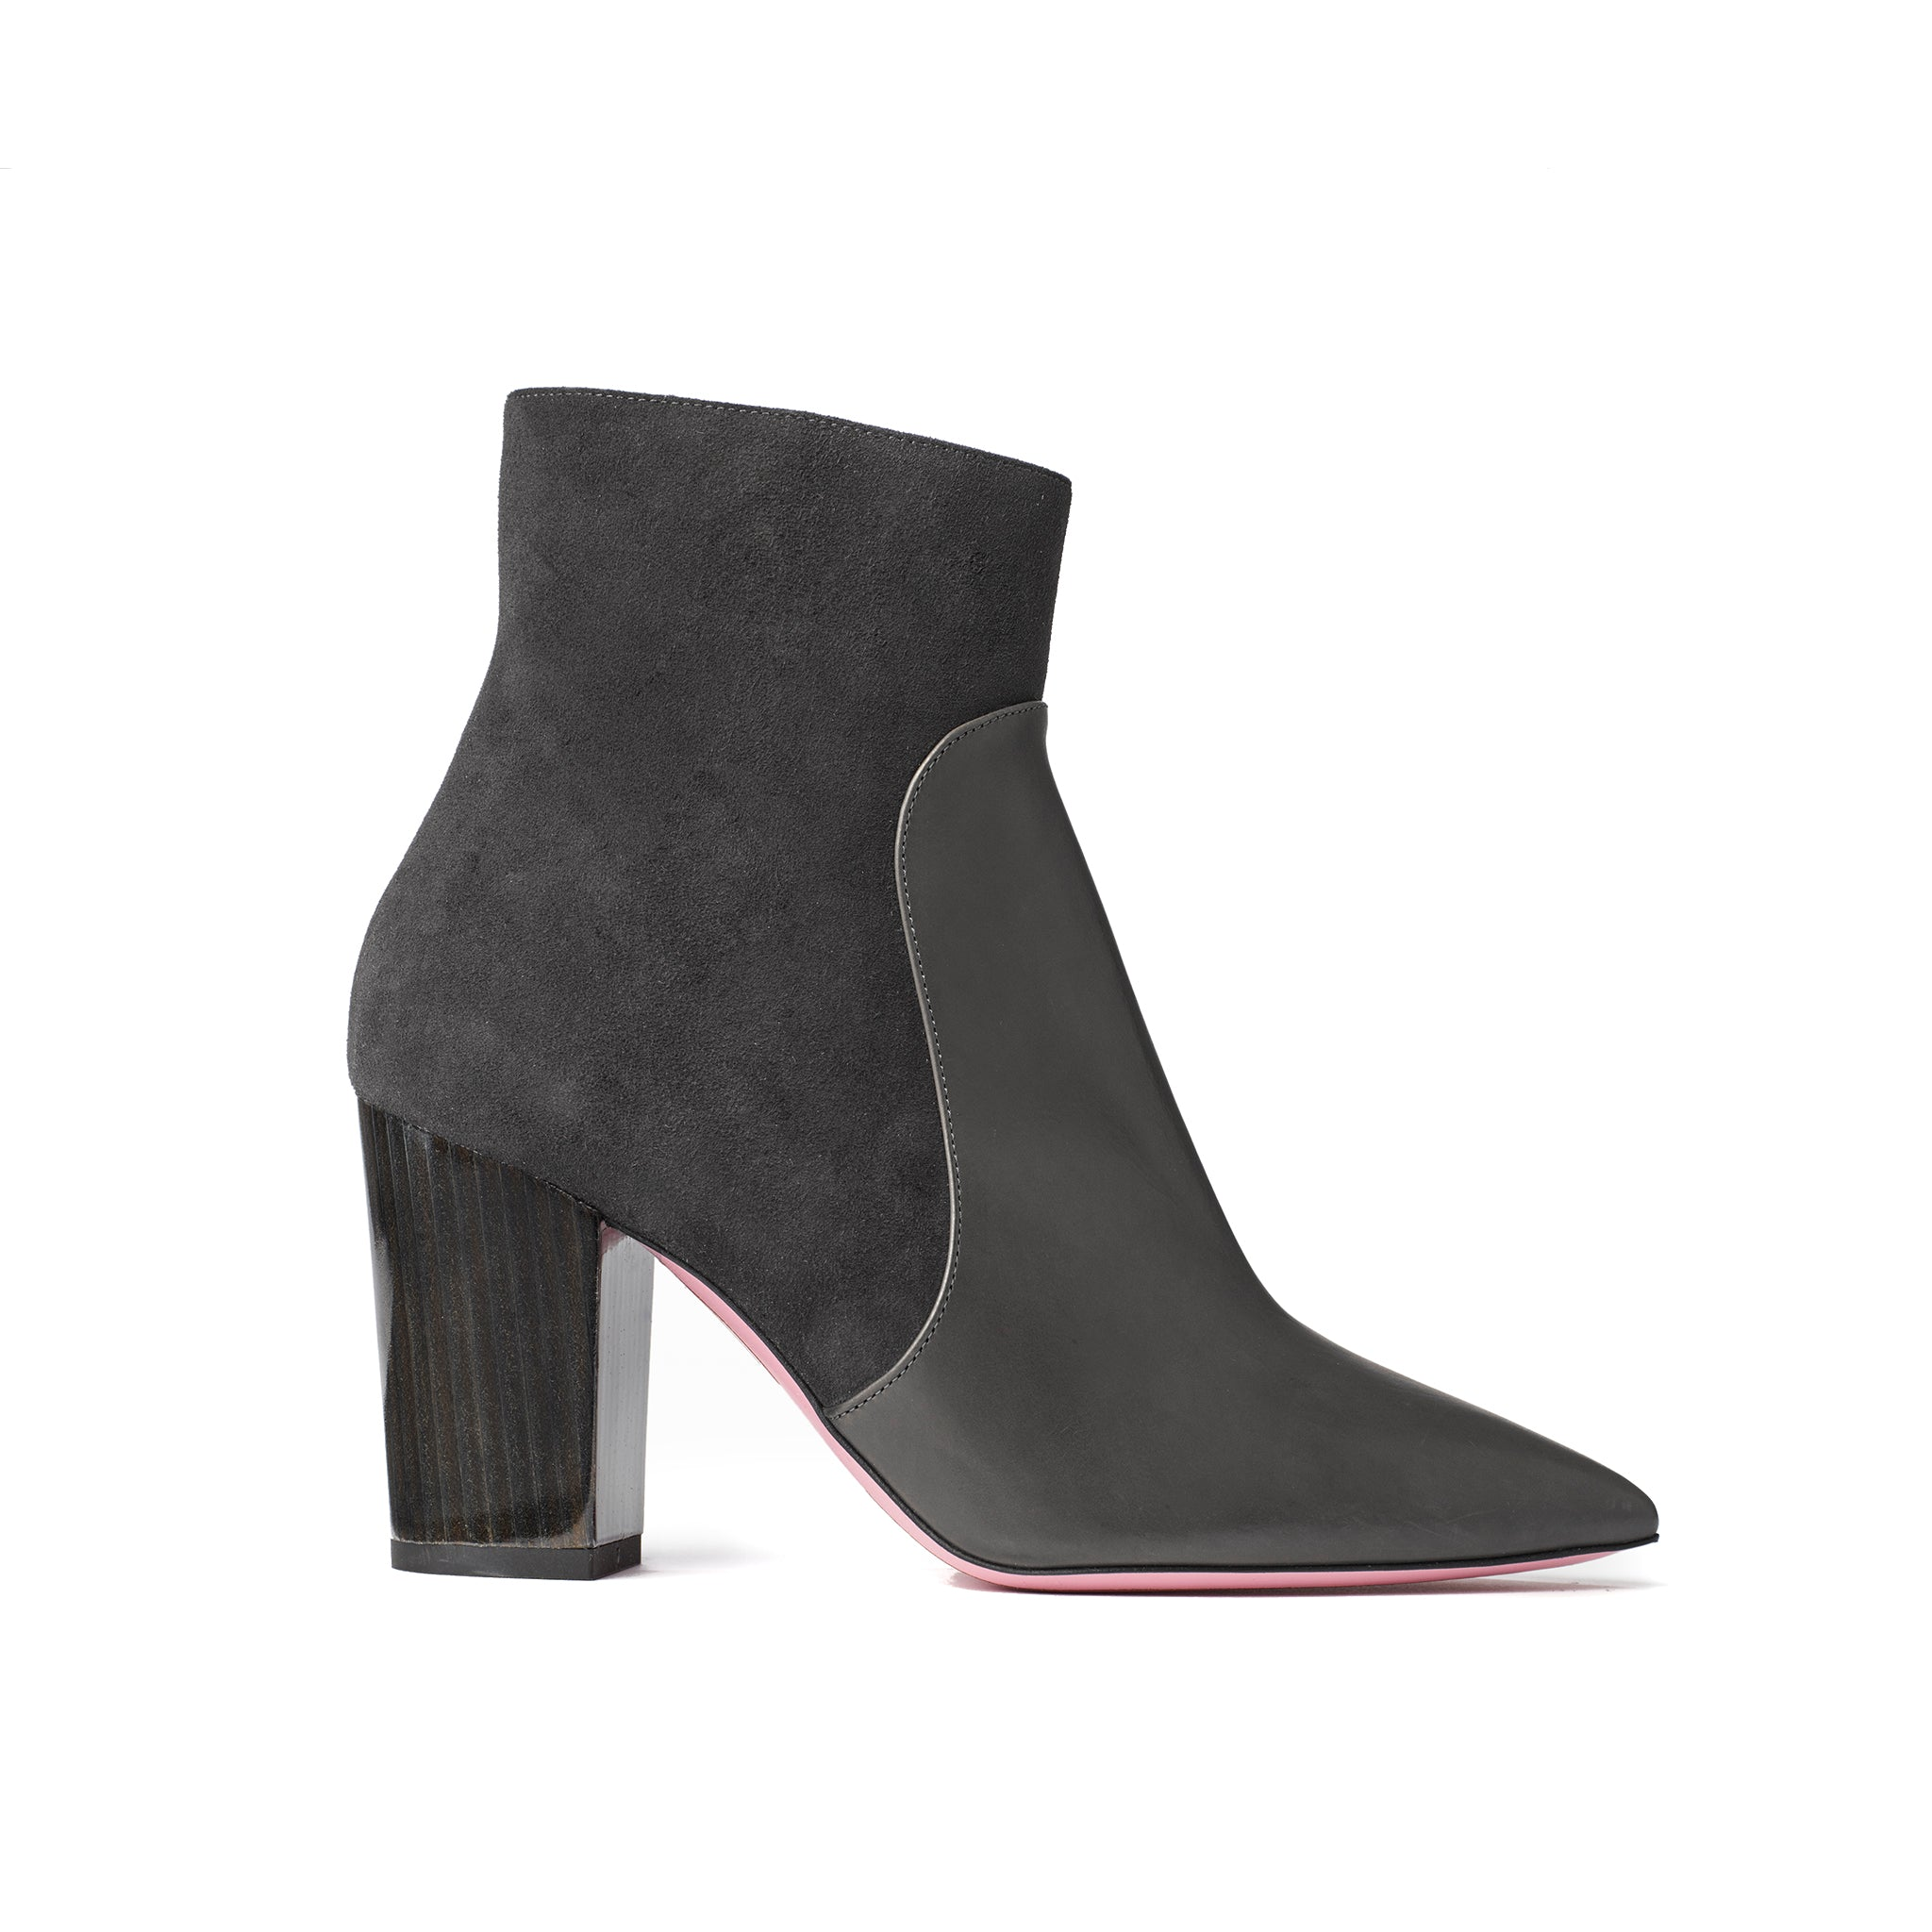 Phare Pointed block heel boot in carbone suede and leather made in Italy